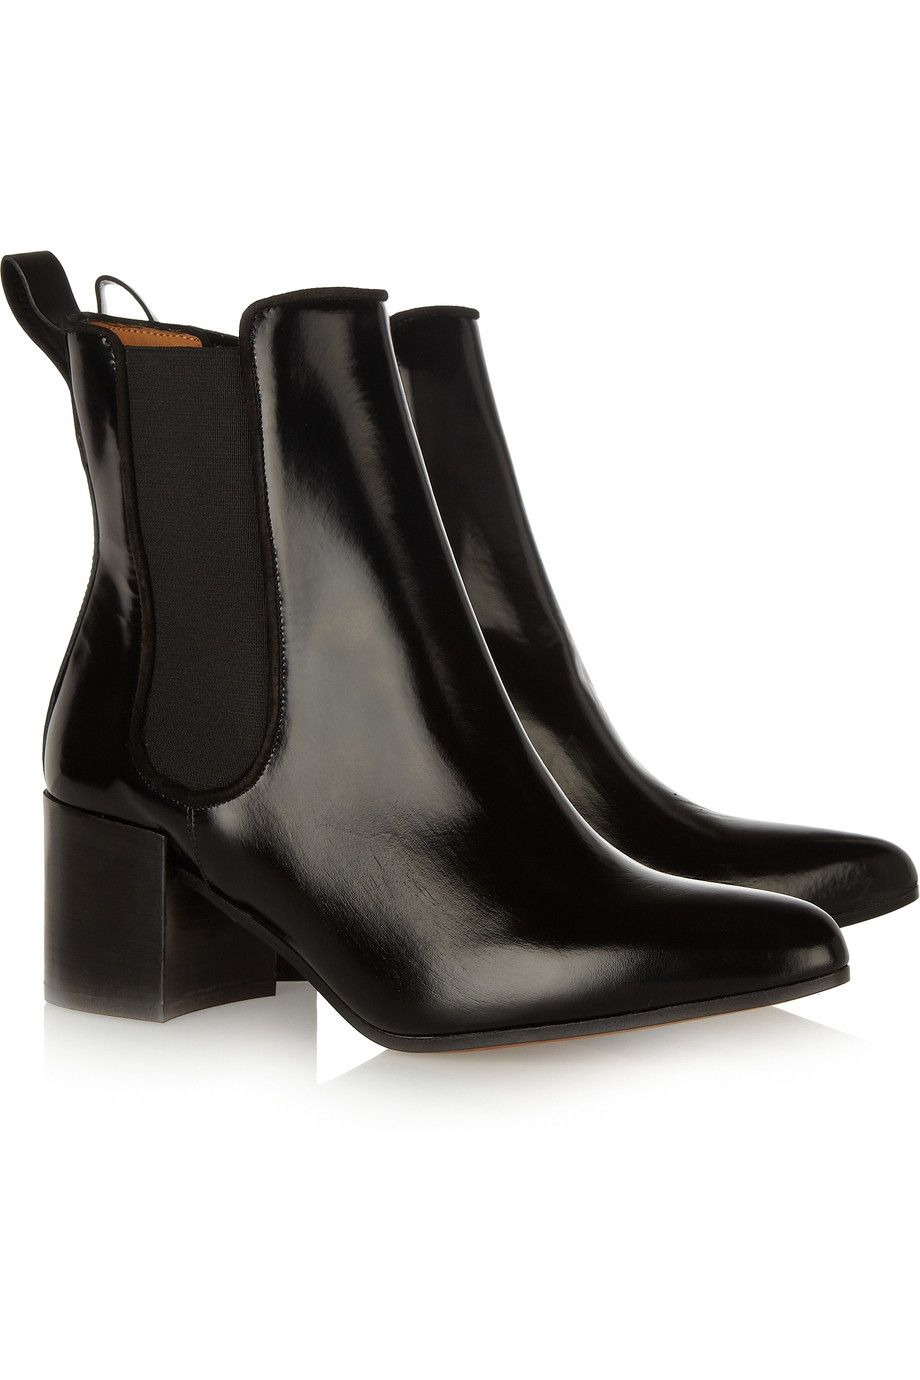 ACNE Free glossed-leather ankle boots   Shoes   Pinterest   Schuhe ... 7720a9d4eb